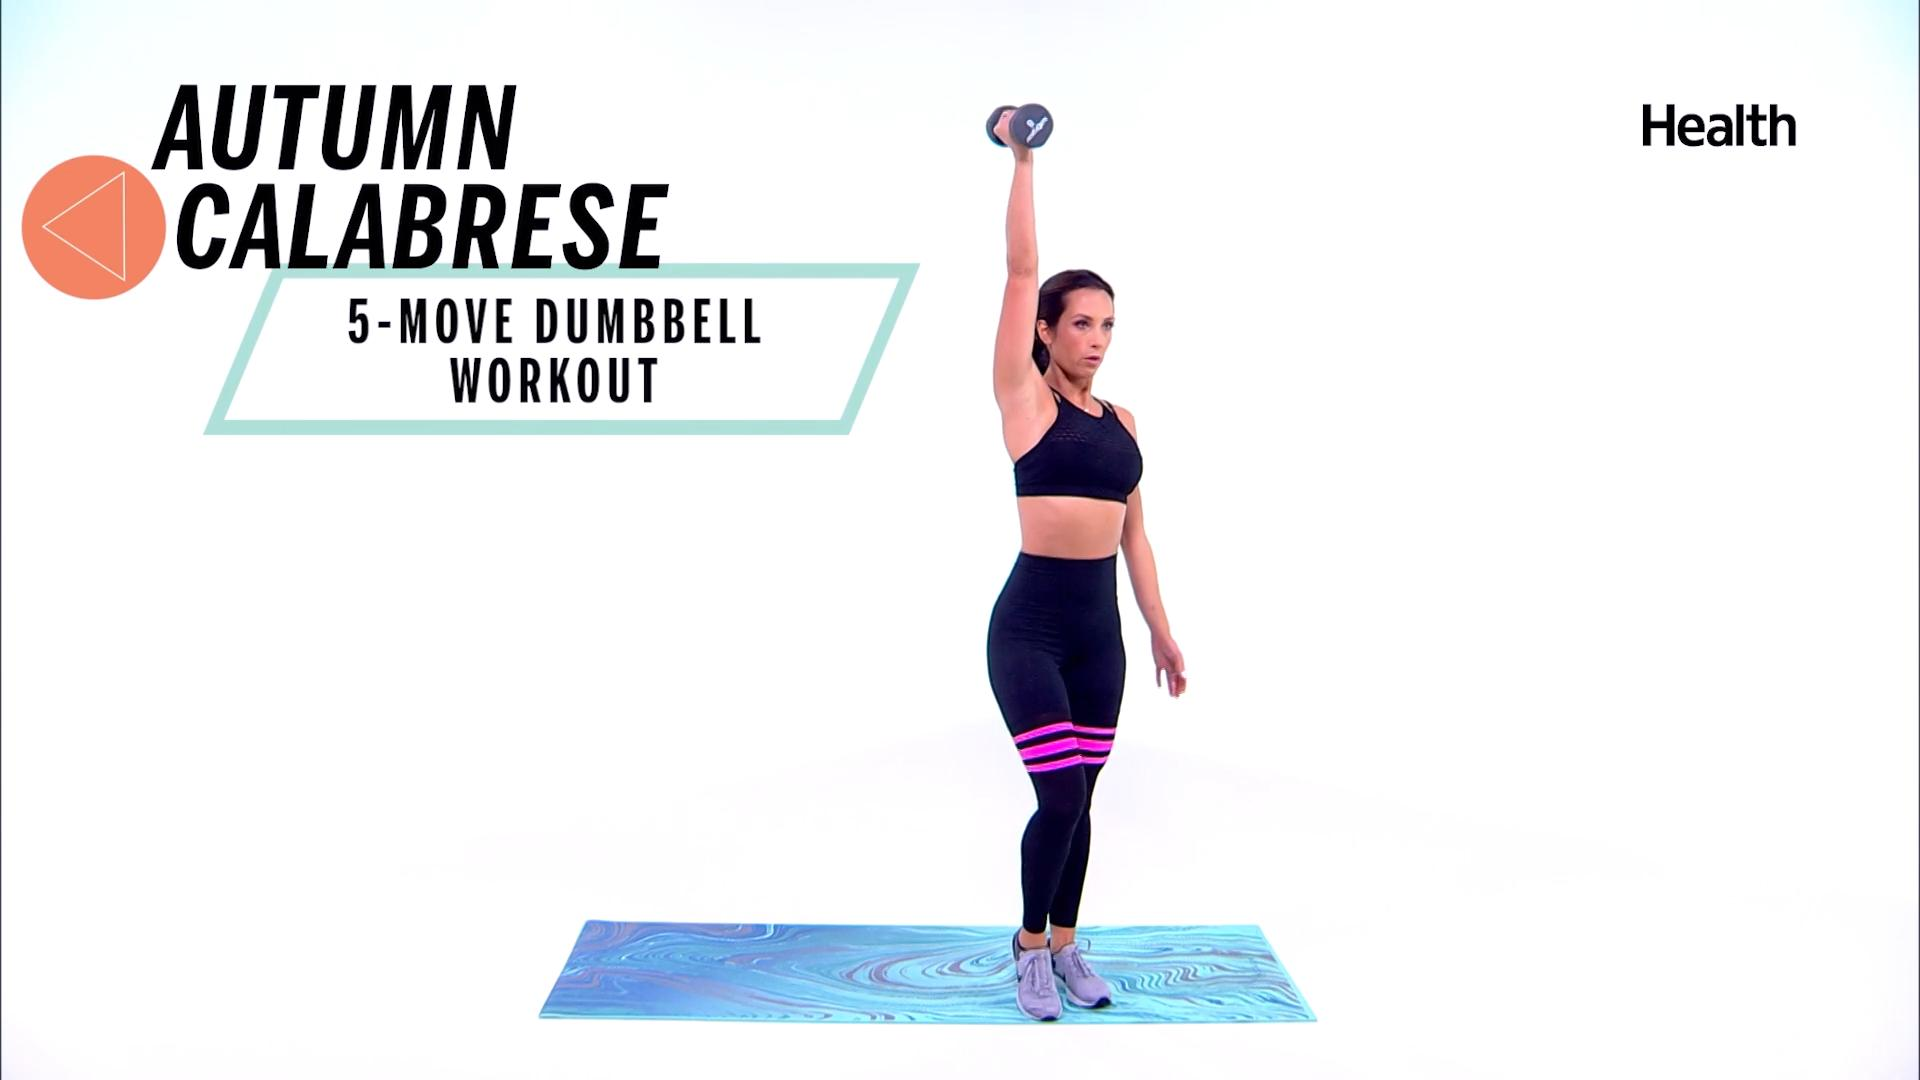 5 Dumbbell Workouts From Autumn Calabrese that Will Tone Your Entire Body